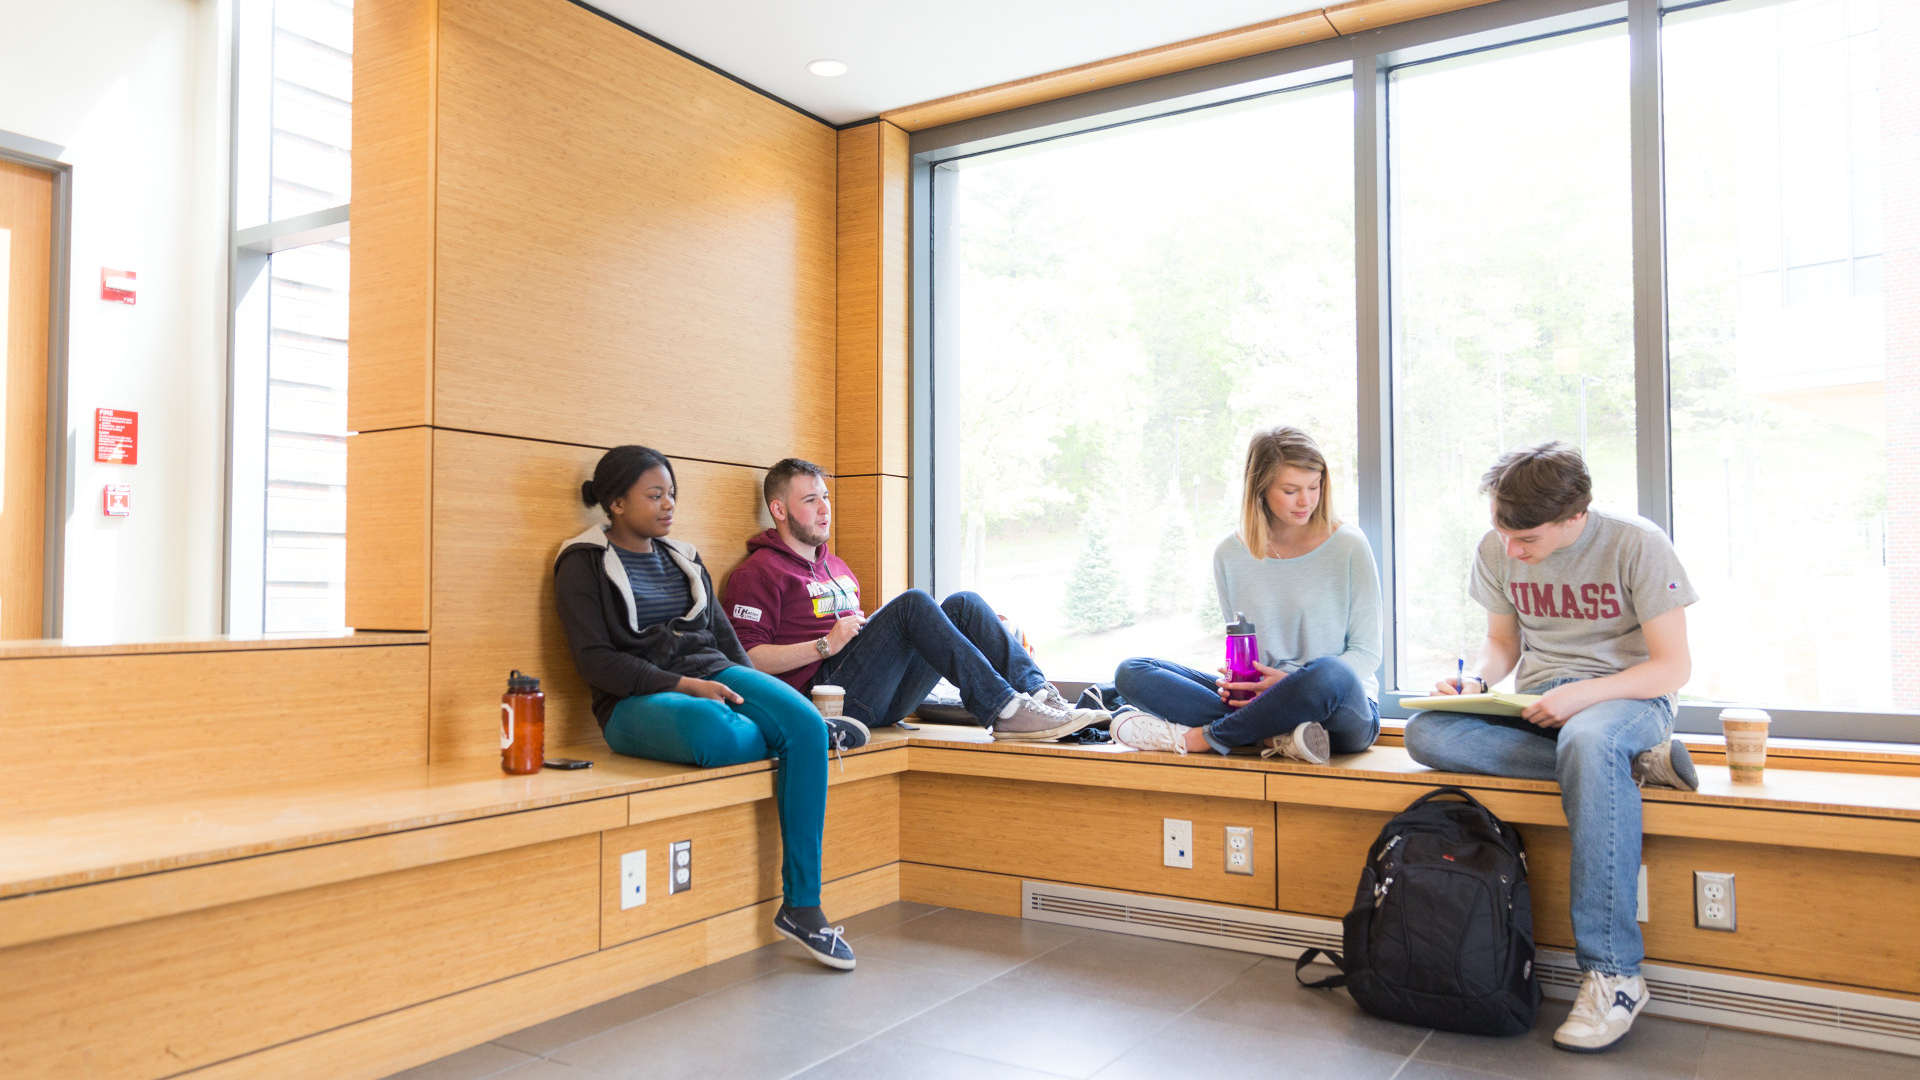 UMass Amherst students study on campus.